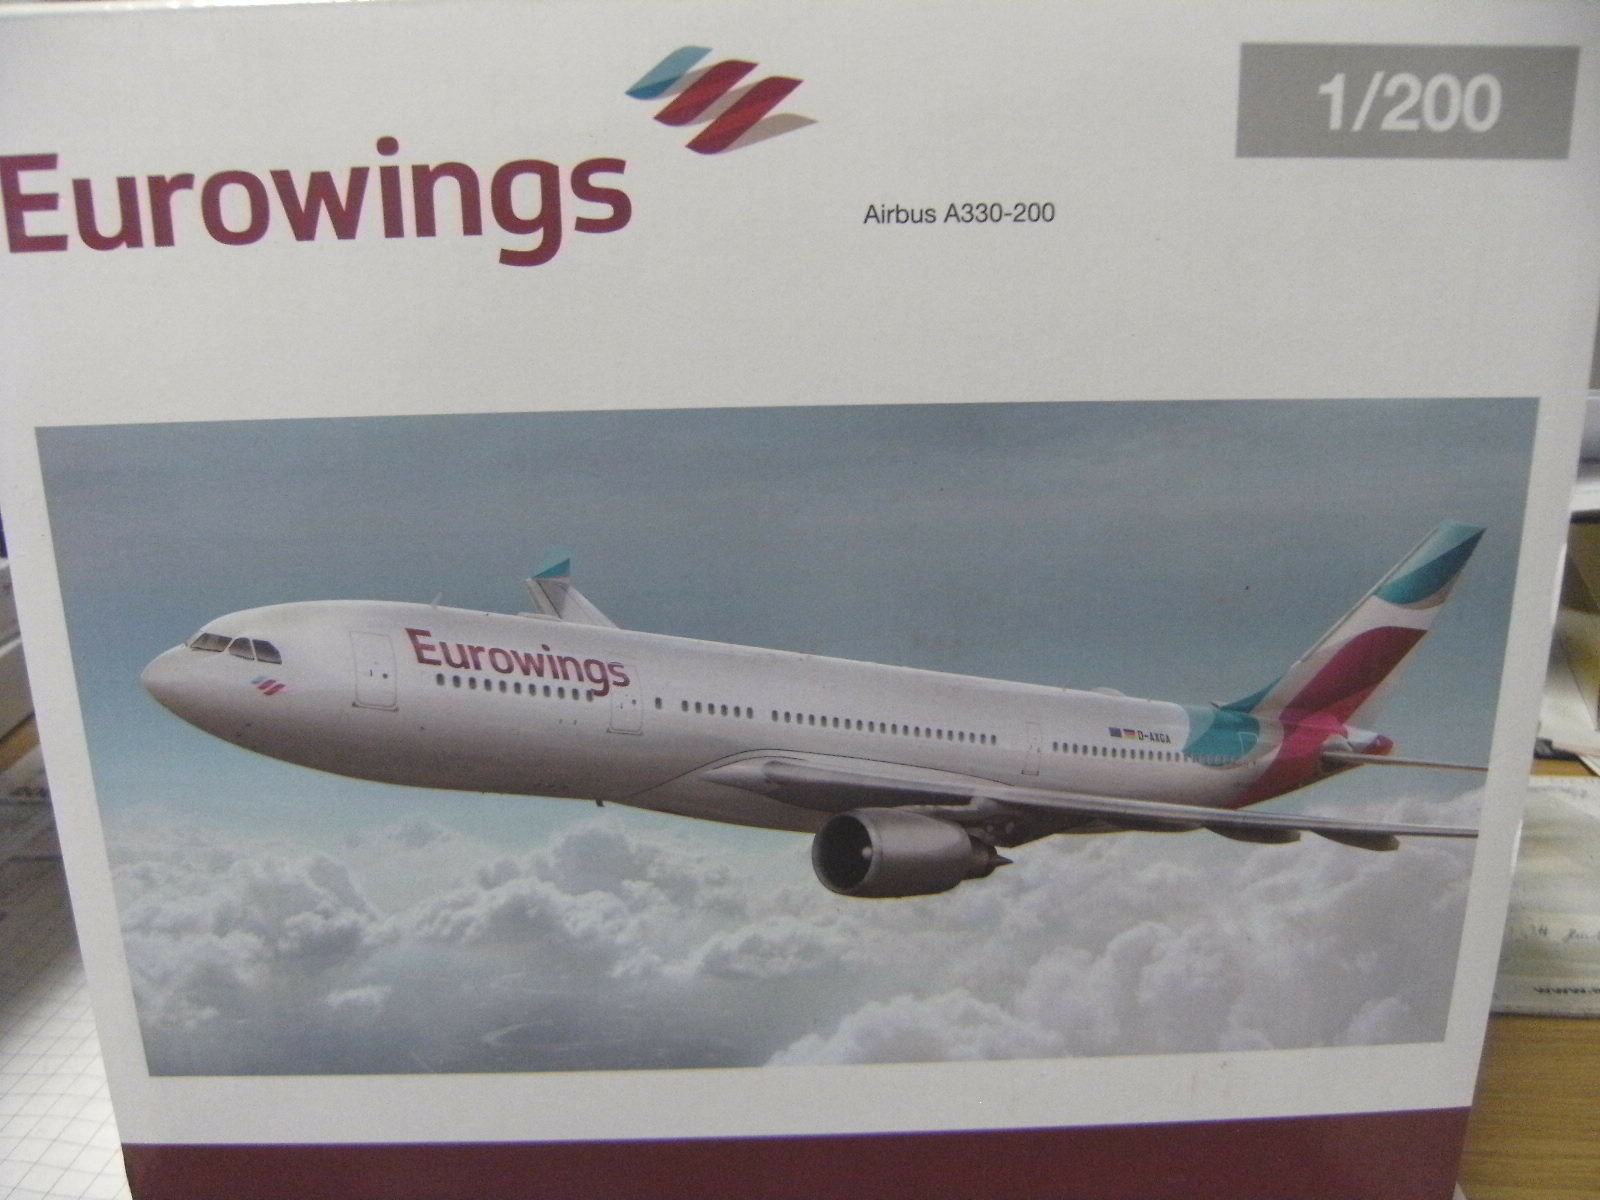 Herpa 1 200 557399 Eurowings Airbus a330-200 NUOVO OVP